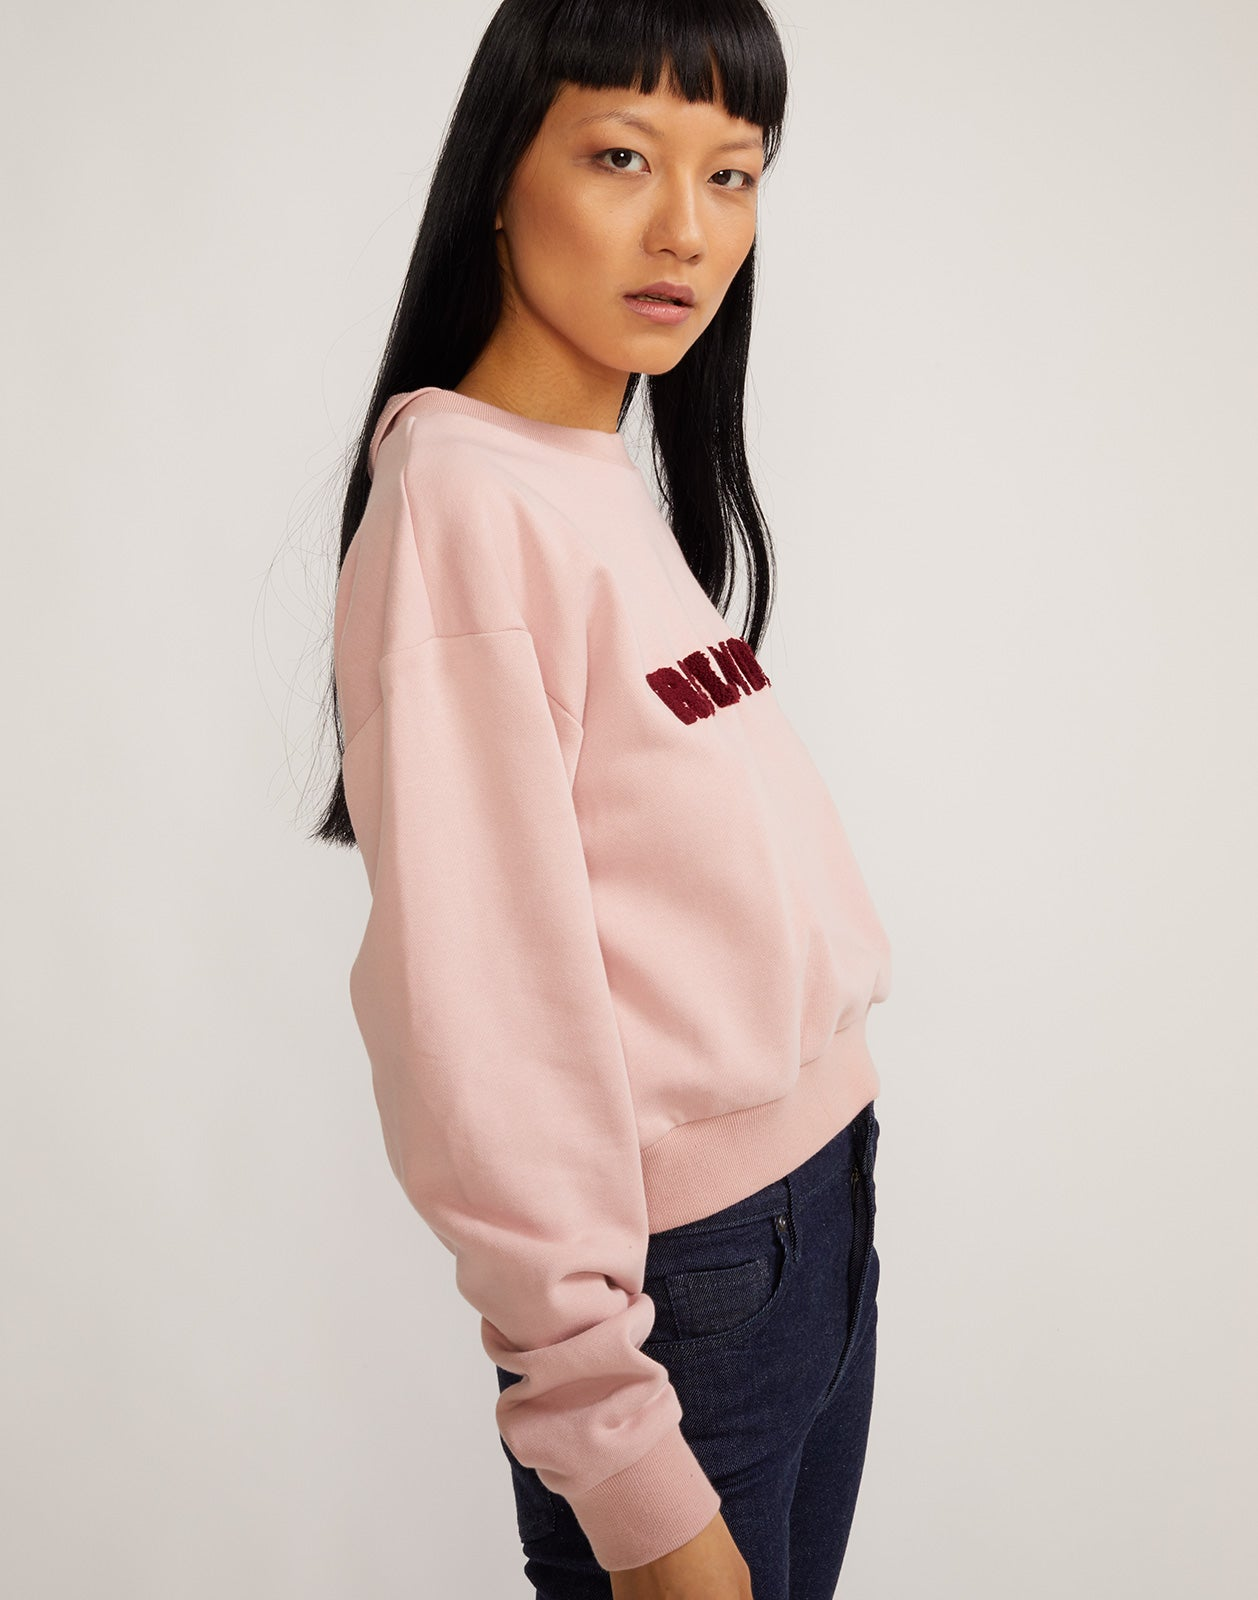 Model wearing embroidered crop role model sweatshirt.